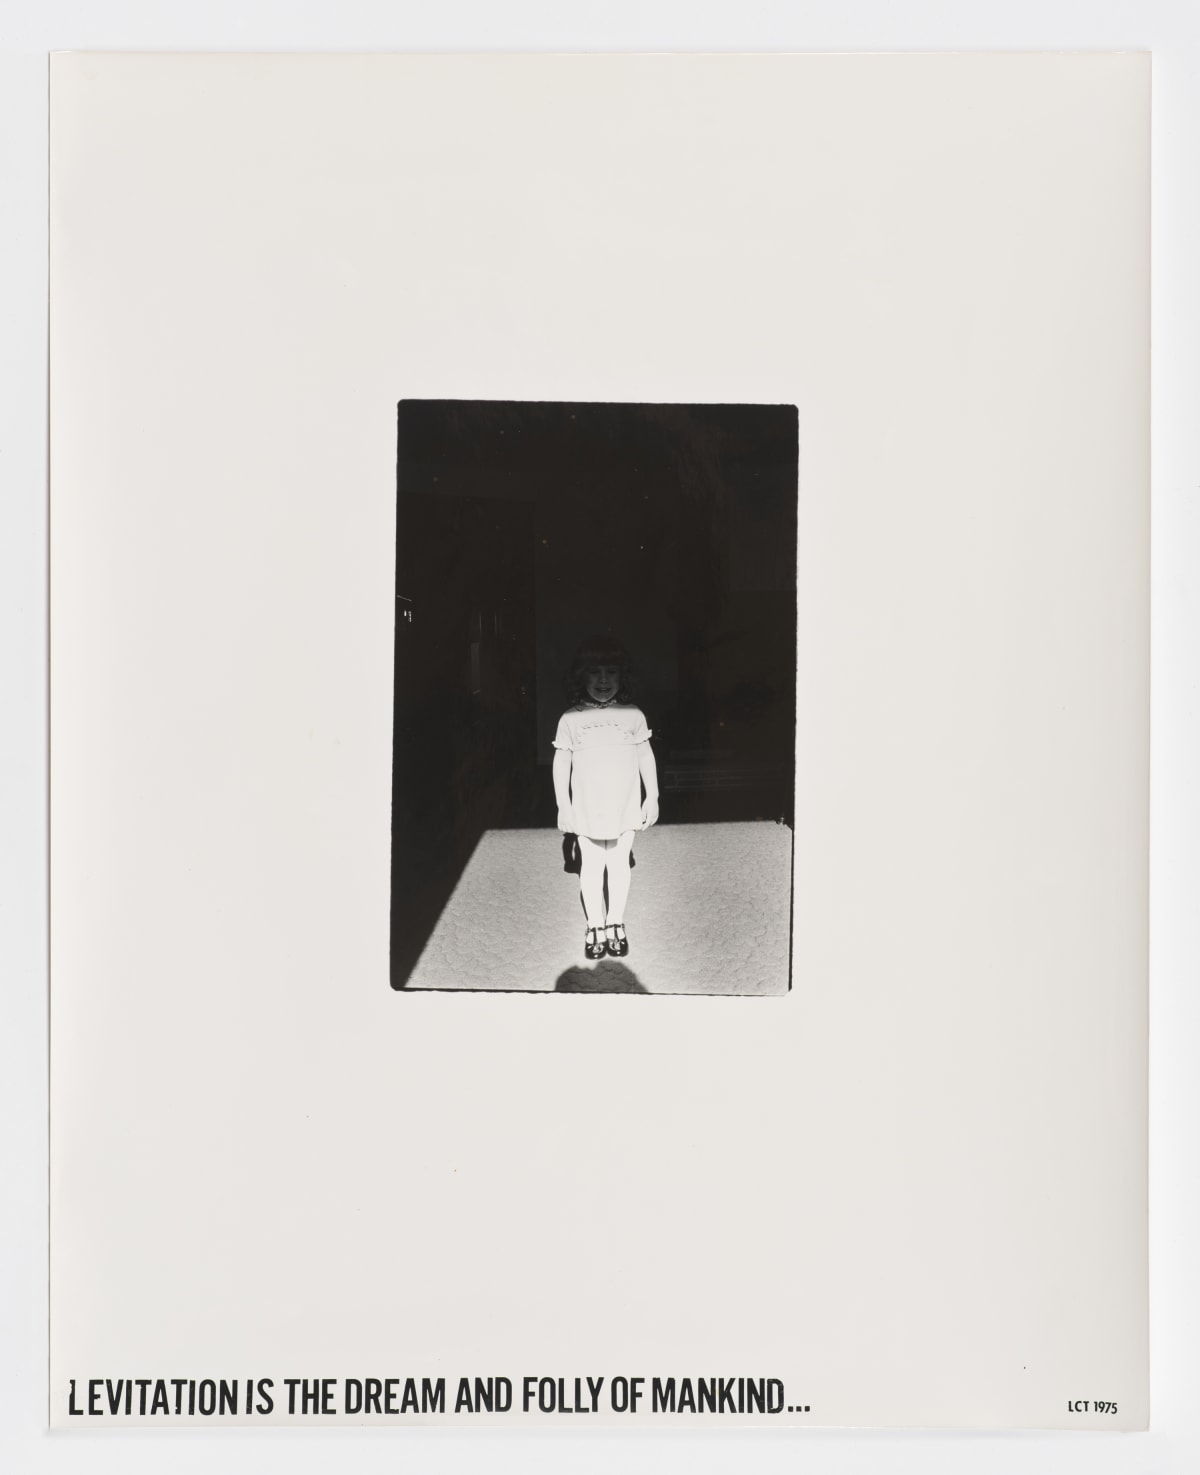 Lew Thomas, LEVITATION IS THE DREAM AND FOLLY OF MANKIND, 1975